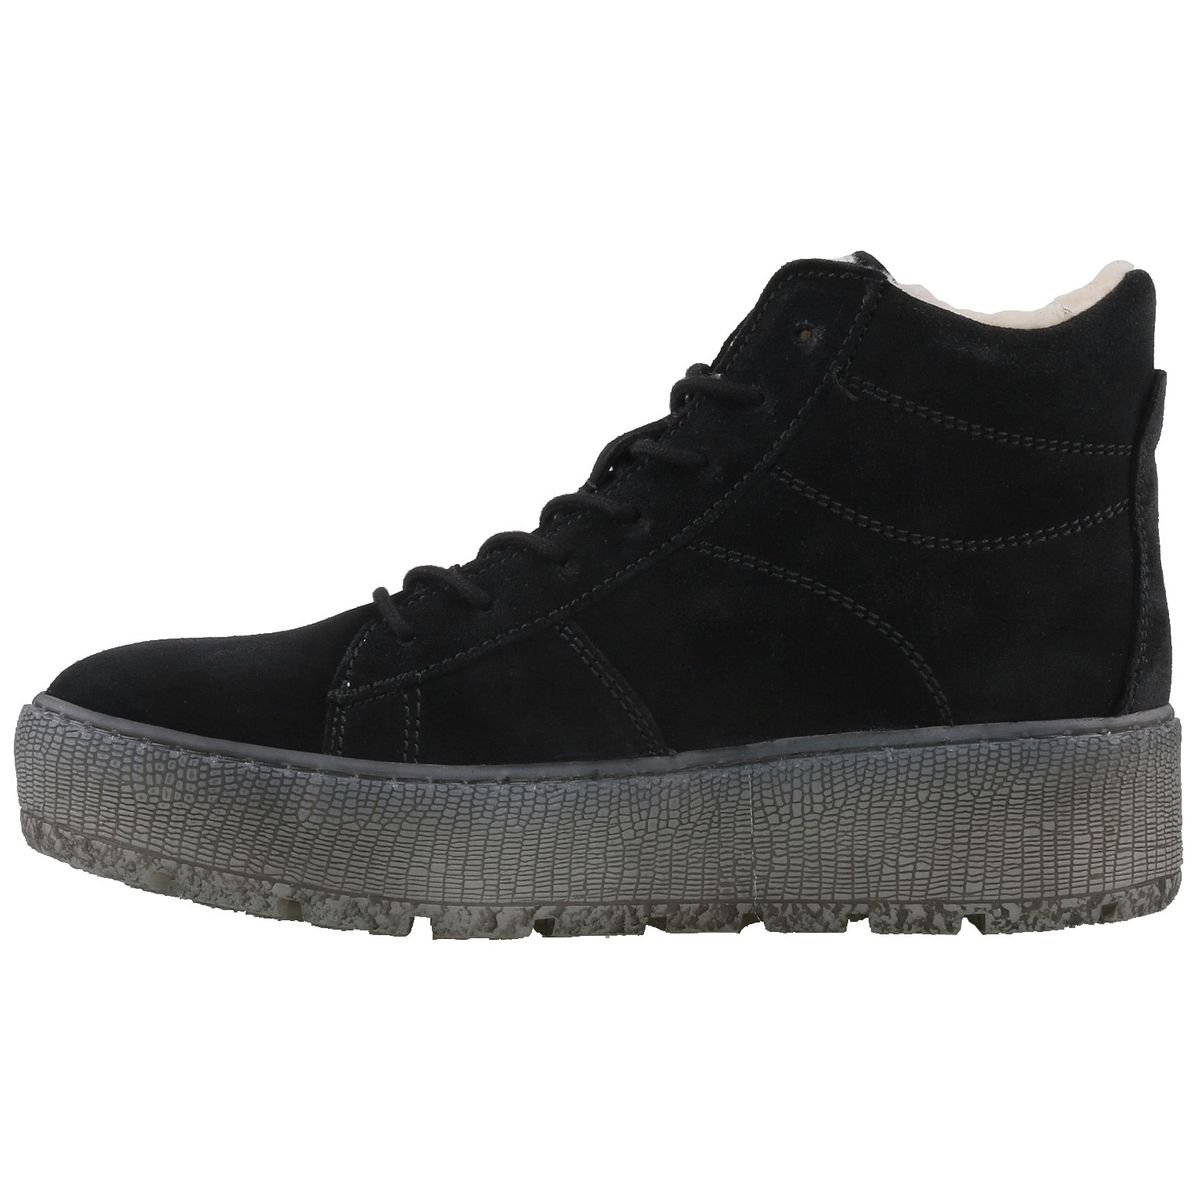 Tamaris Damen Sneakers Plateau High-Top Sneakers Damen gefüttert Schwarz - 8311aa